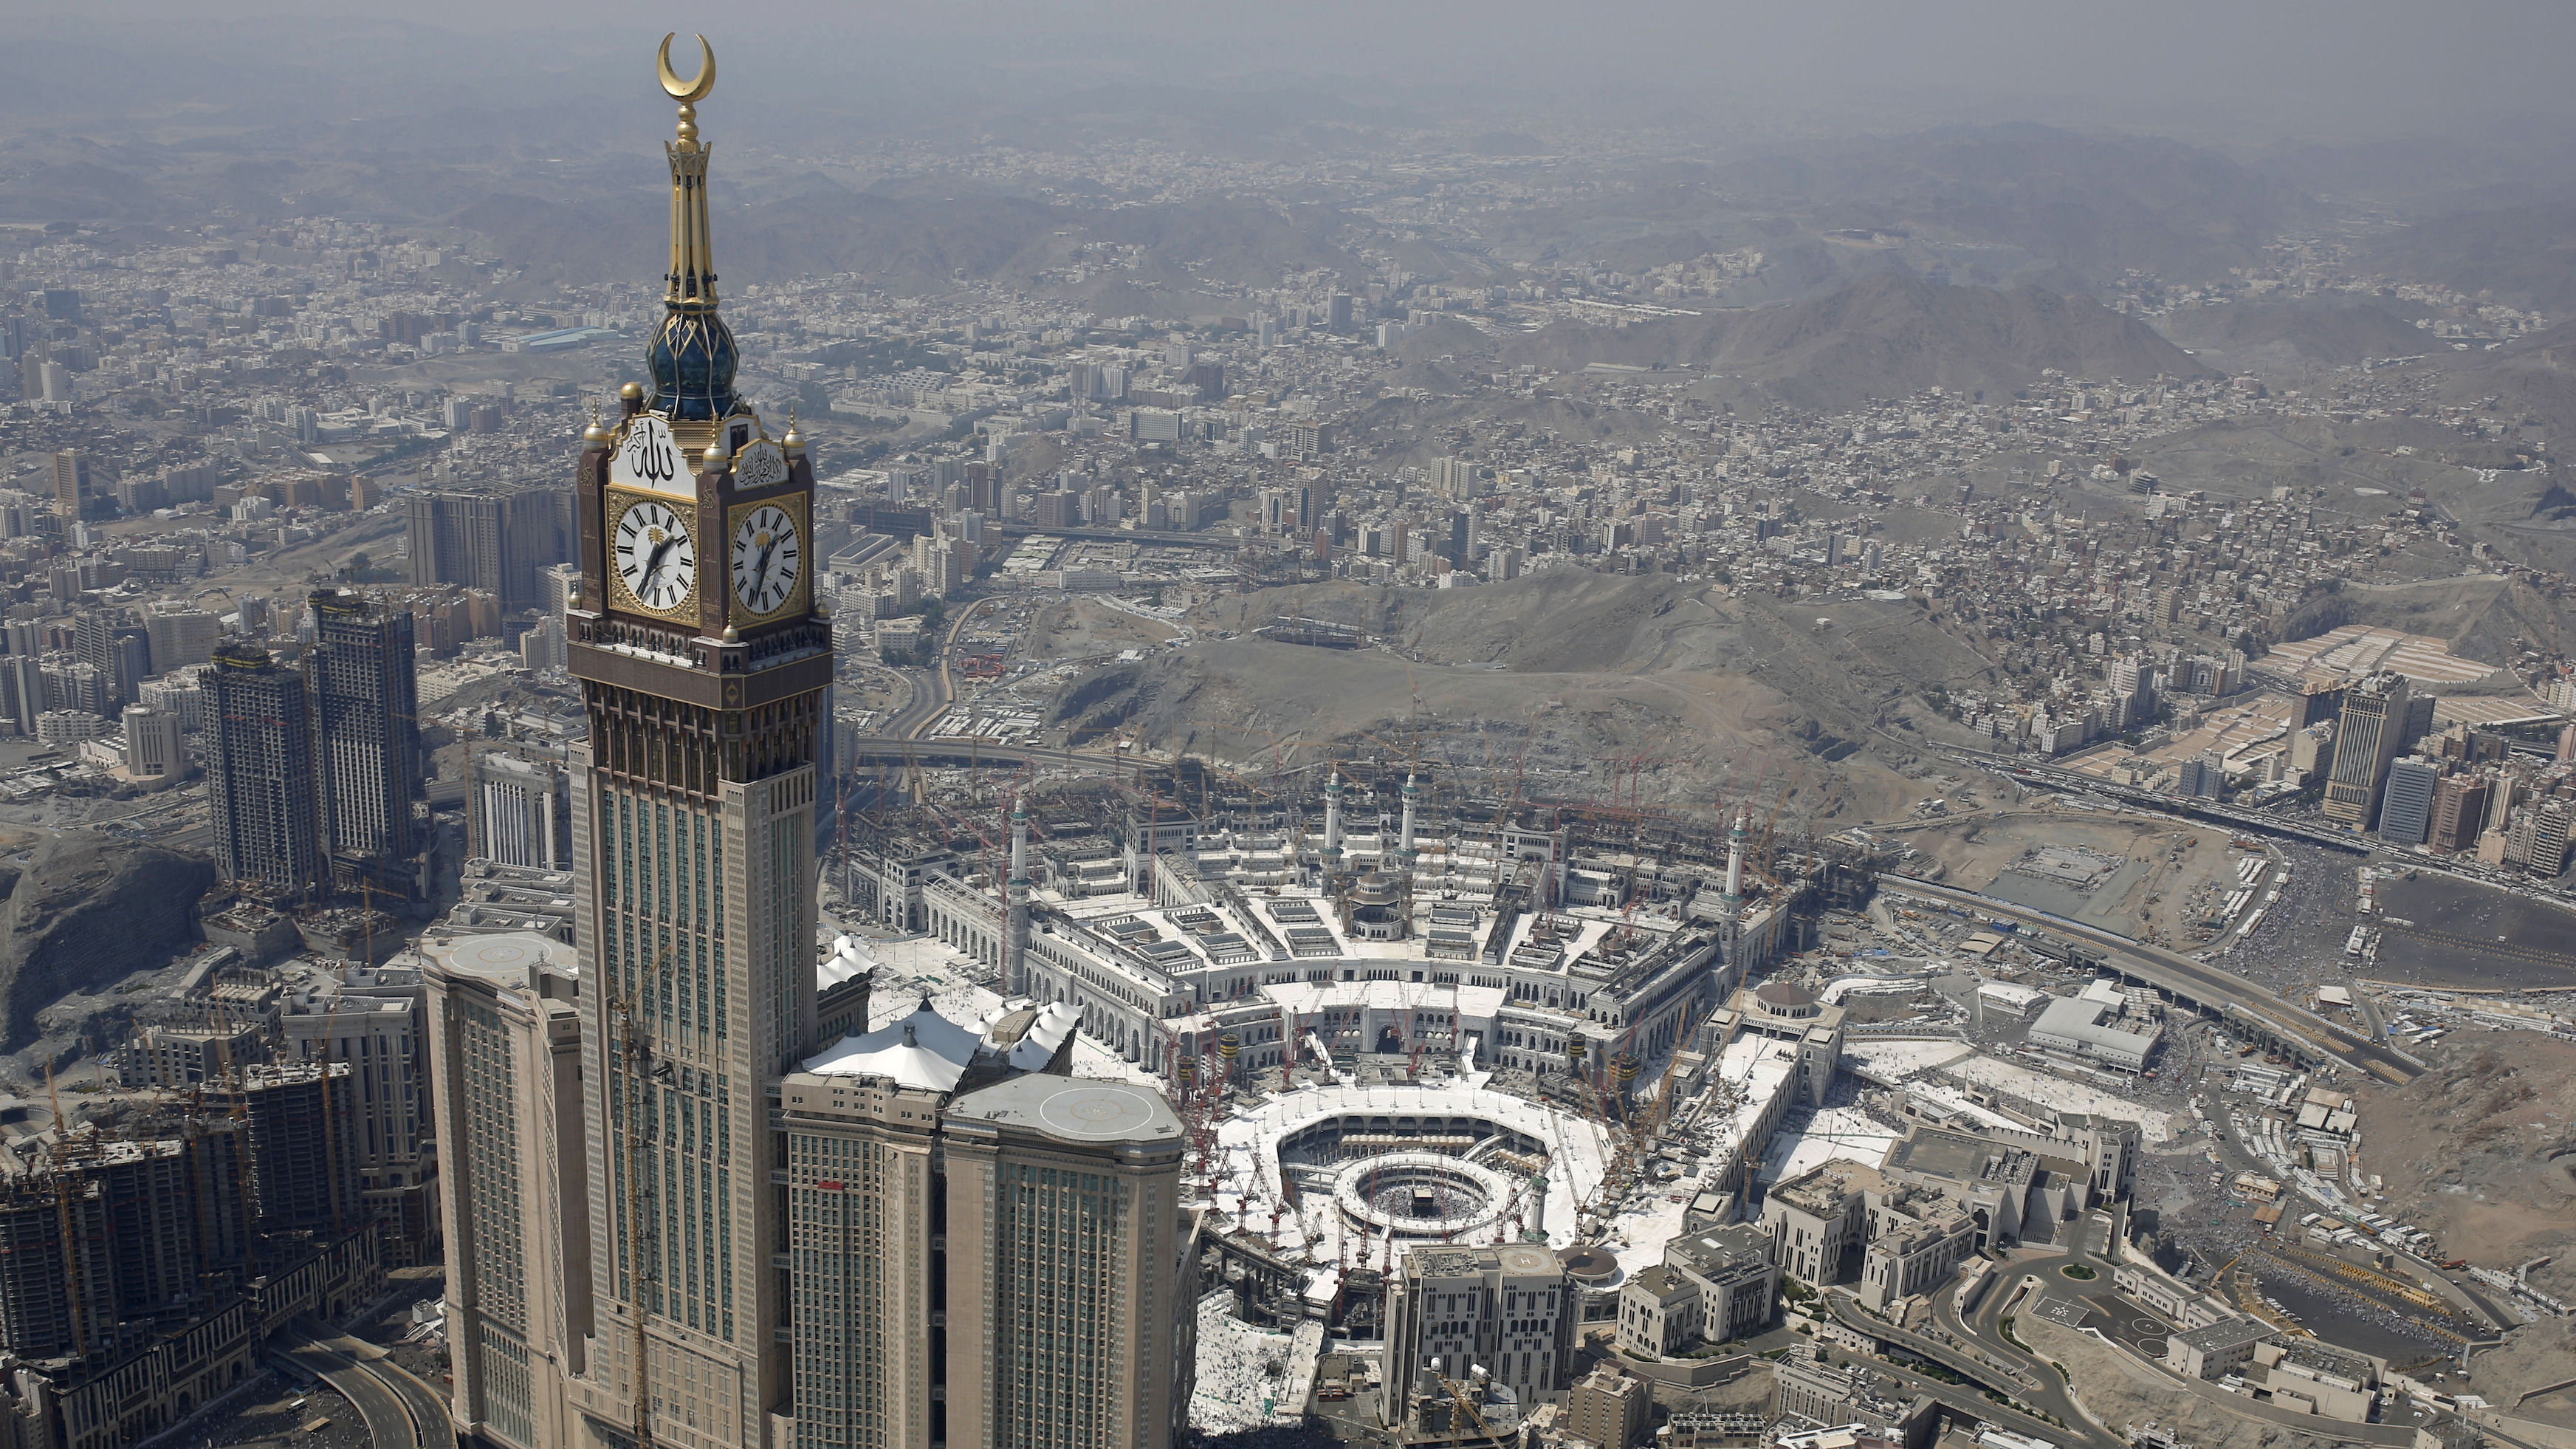 Mecca belongs to all Muslims, and Saudi Arabia shouldn't be allowed